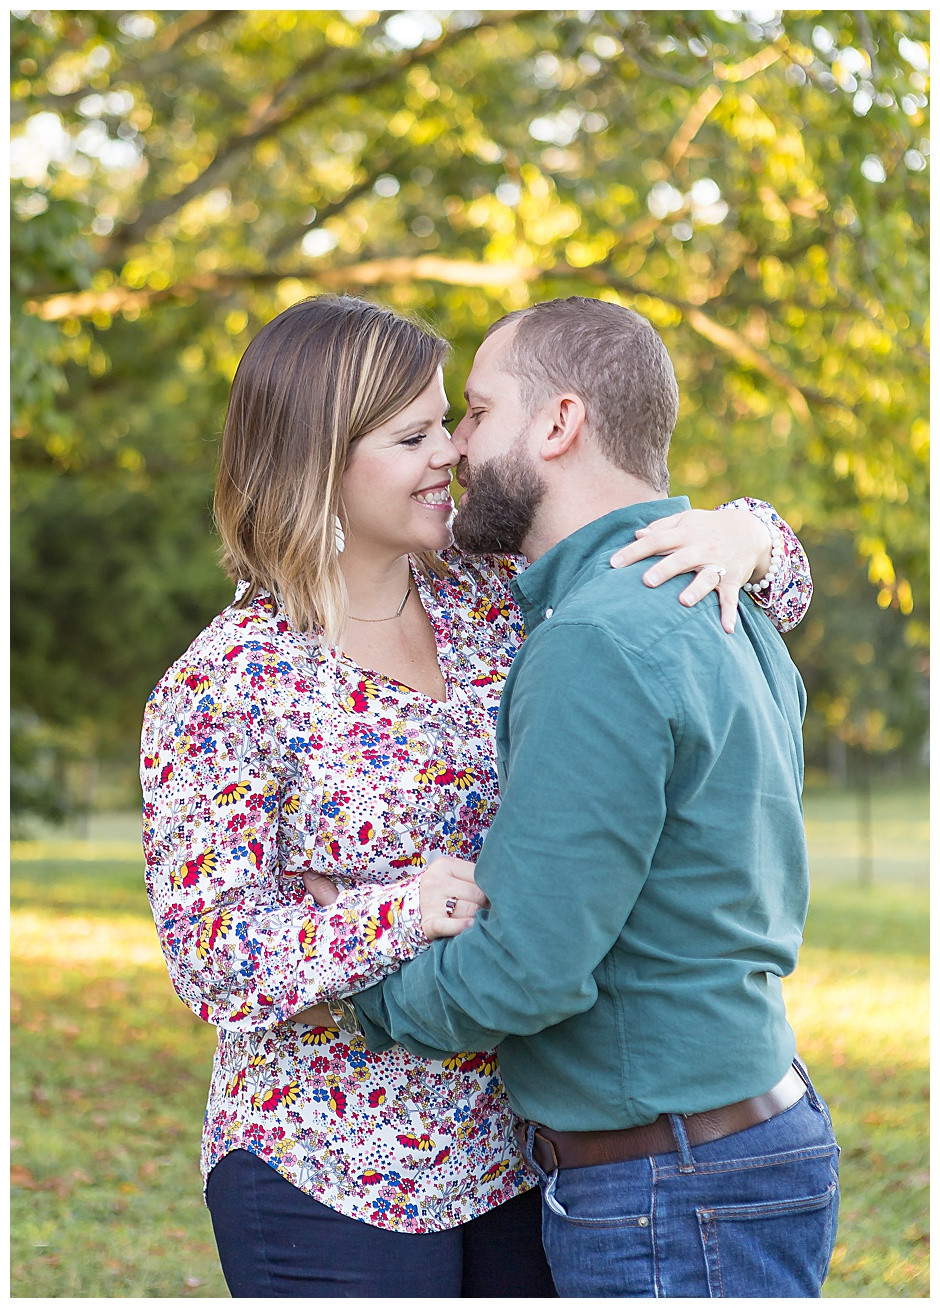 family photographer Chattanooga, maternity photos Chattanooga, kiss, fall trees